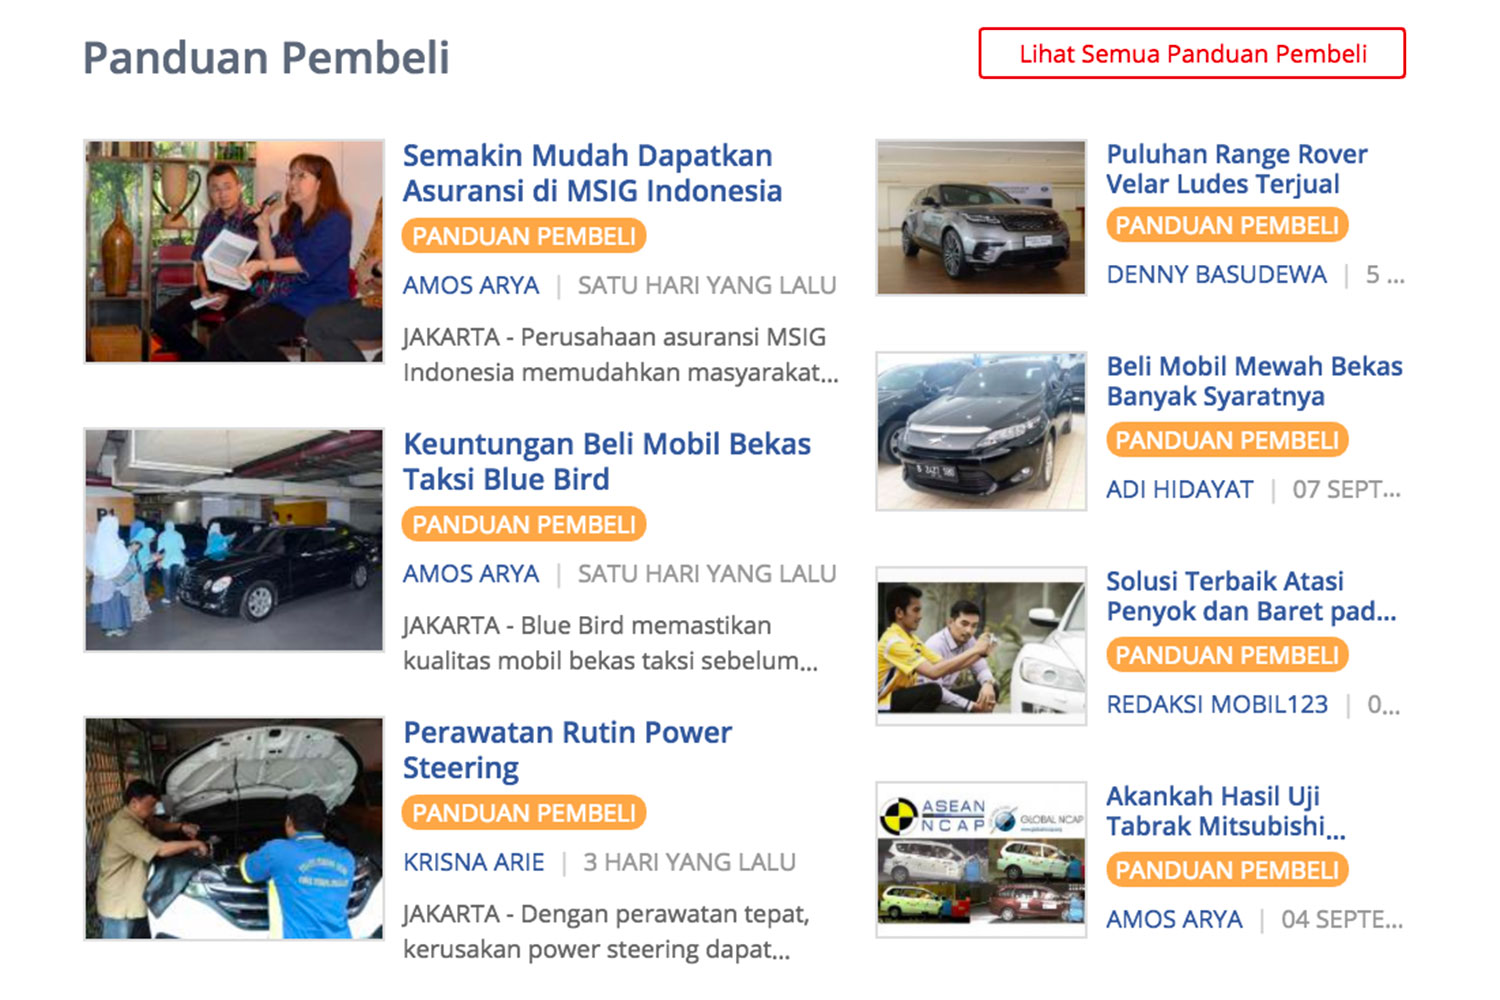 homepage-website-mobil123-com (6)